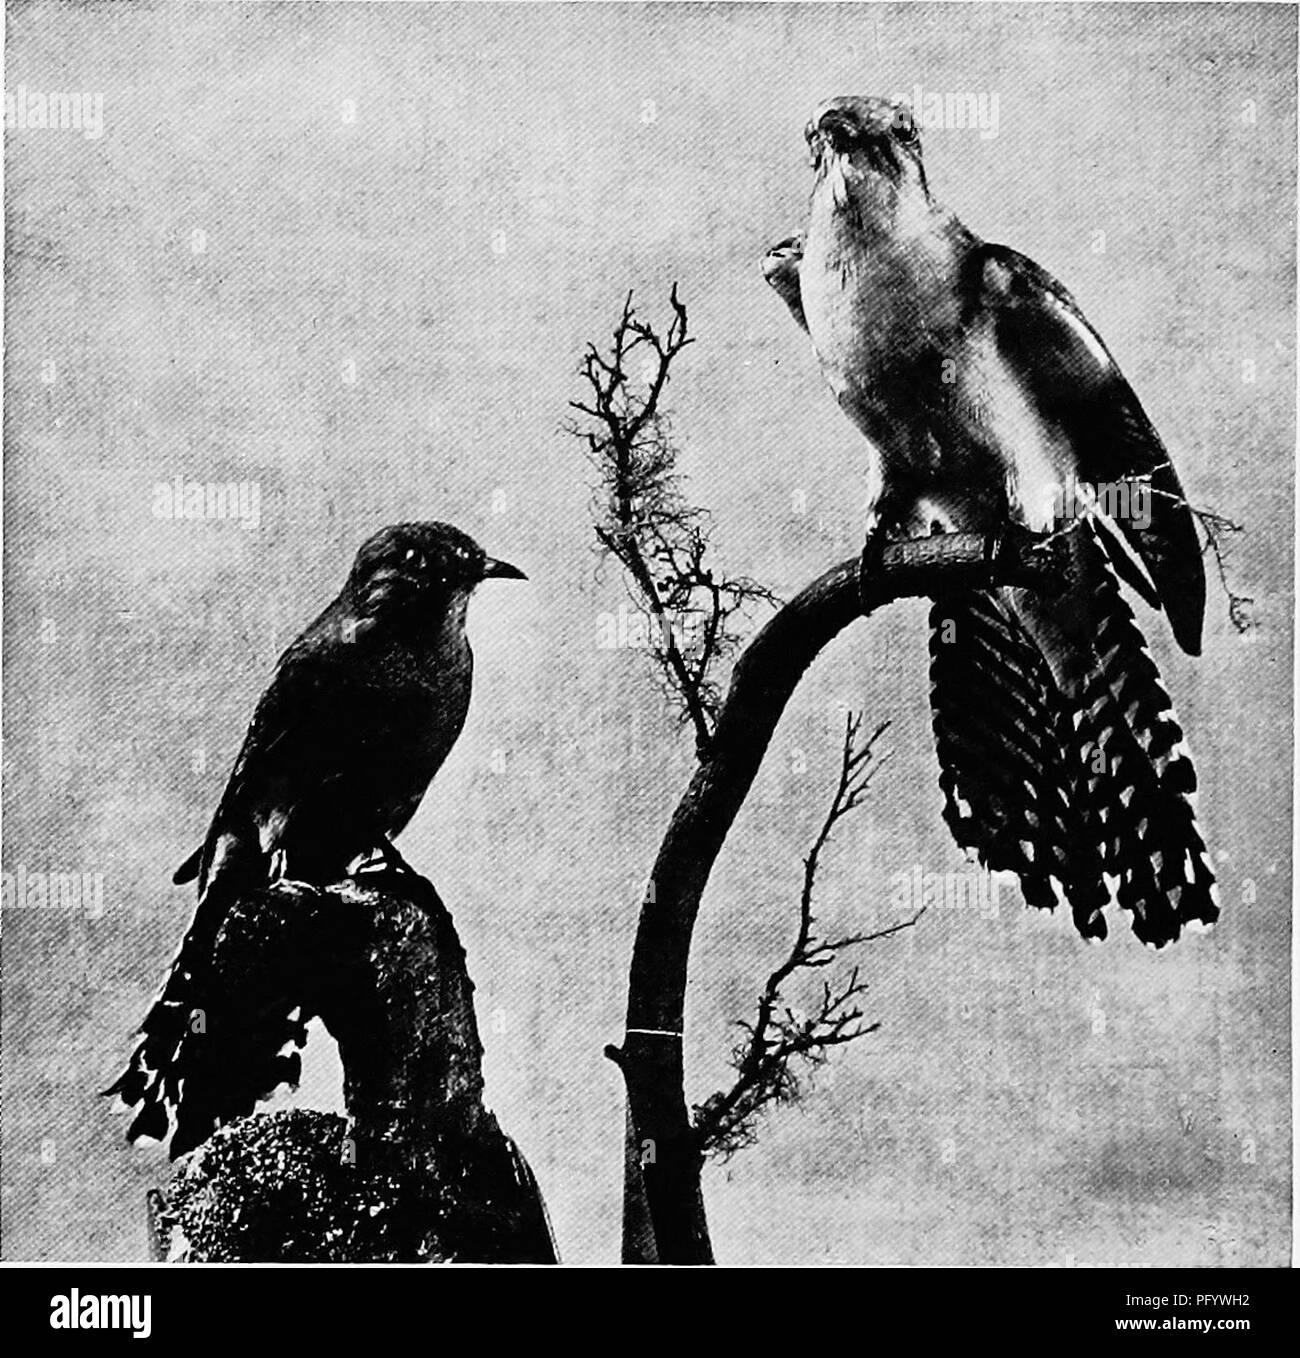 The Birds Of Australia 248 THE BIRDS OF ATJSTKALIA Instinct Which Enables